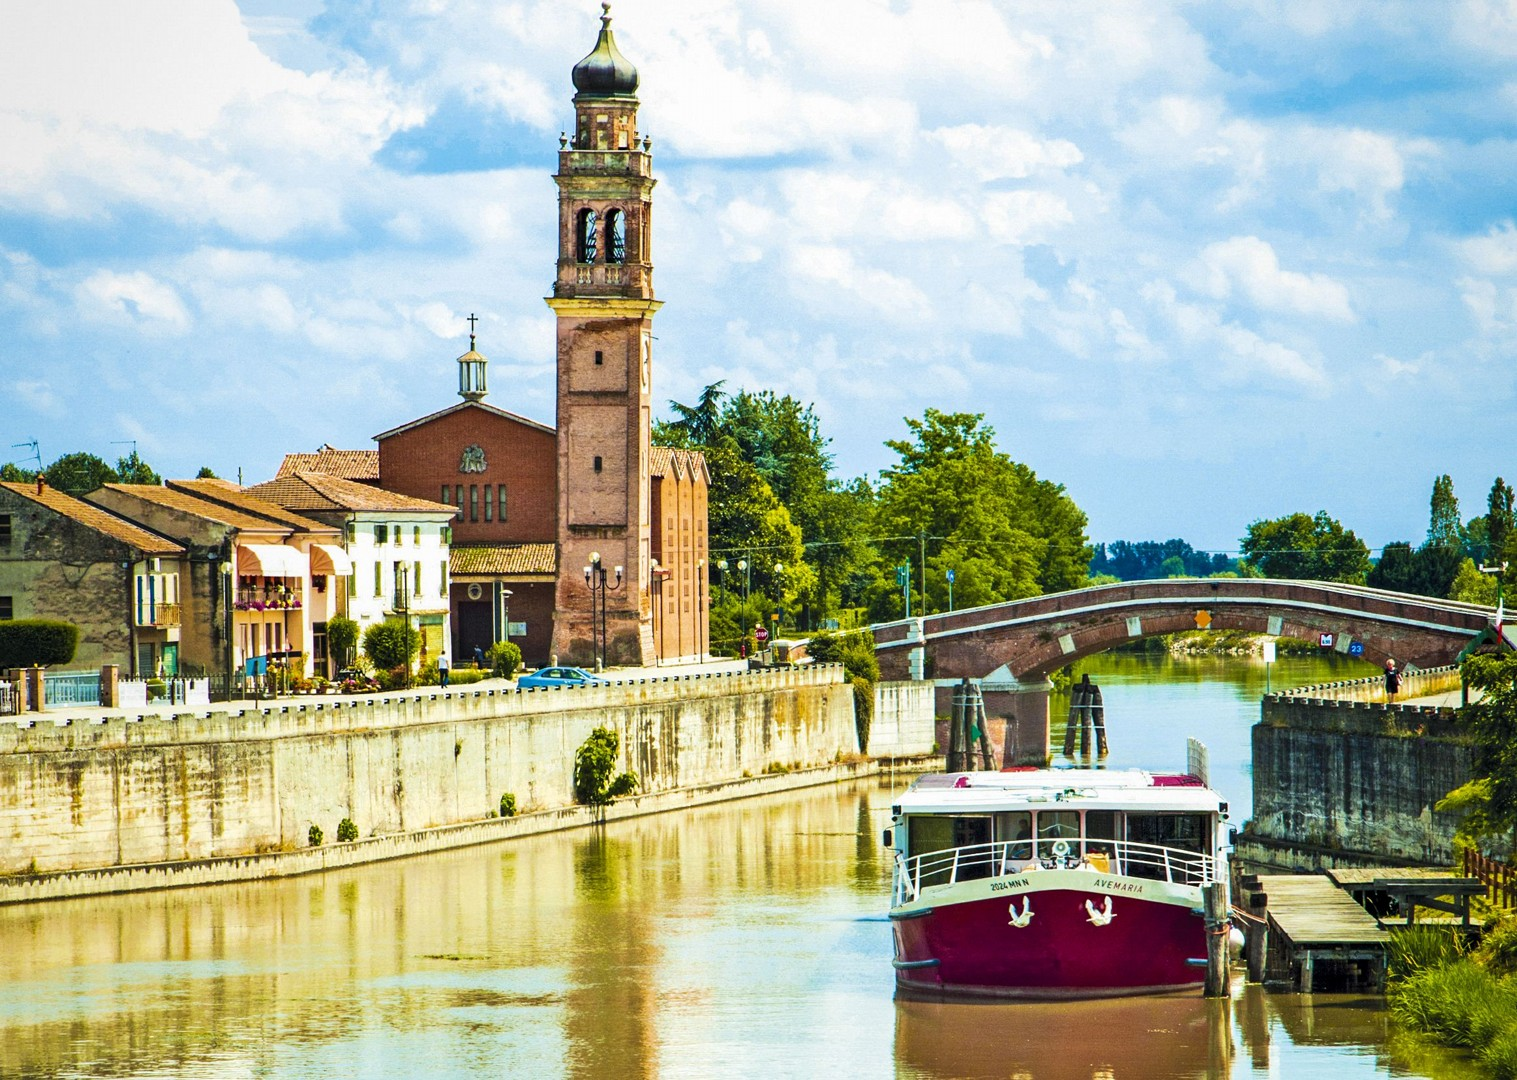 ave-maria-bike-and-boat-tour-modern-bright-accommodation-saddle-skedaddle.jpg - Italy - Venetian Waterways (Venice to Mantova) - Bike and Barge Holiday - Leisure Cycling